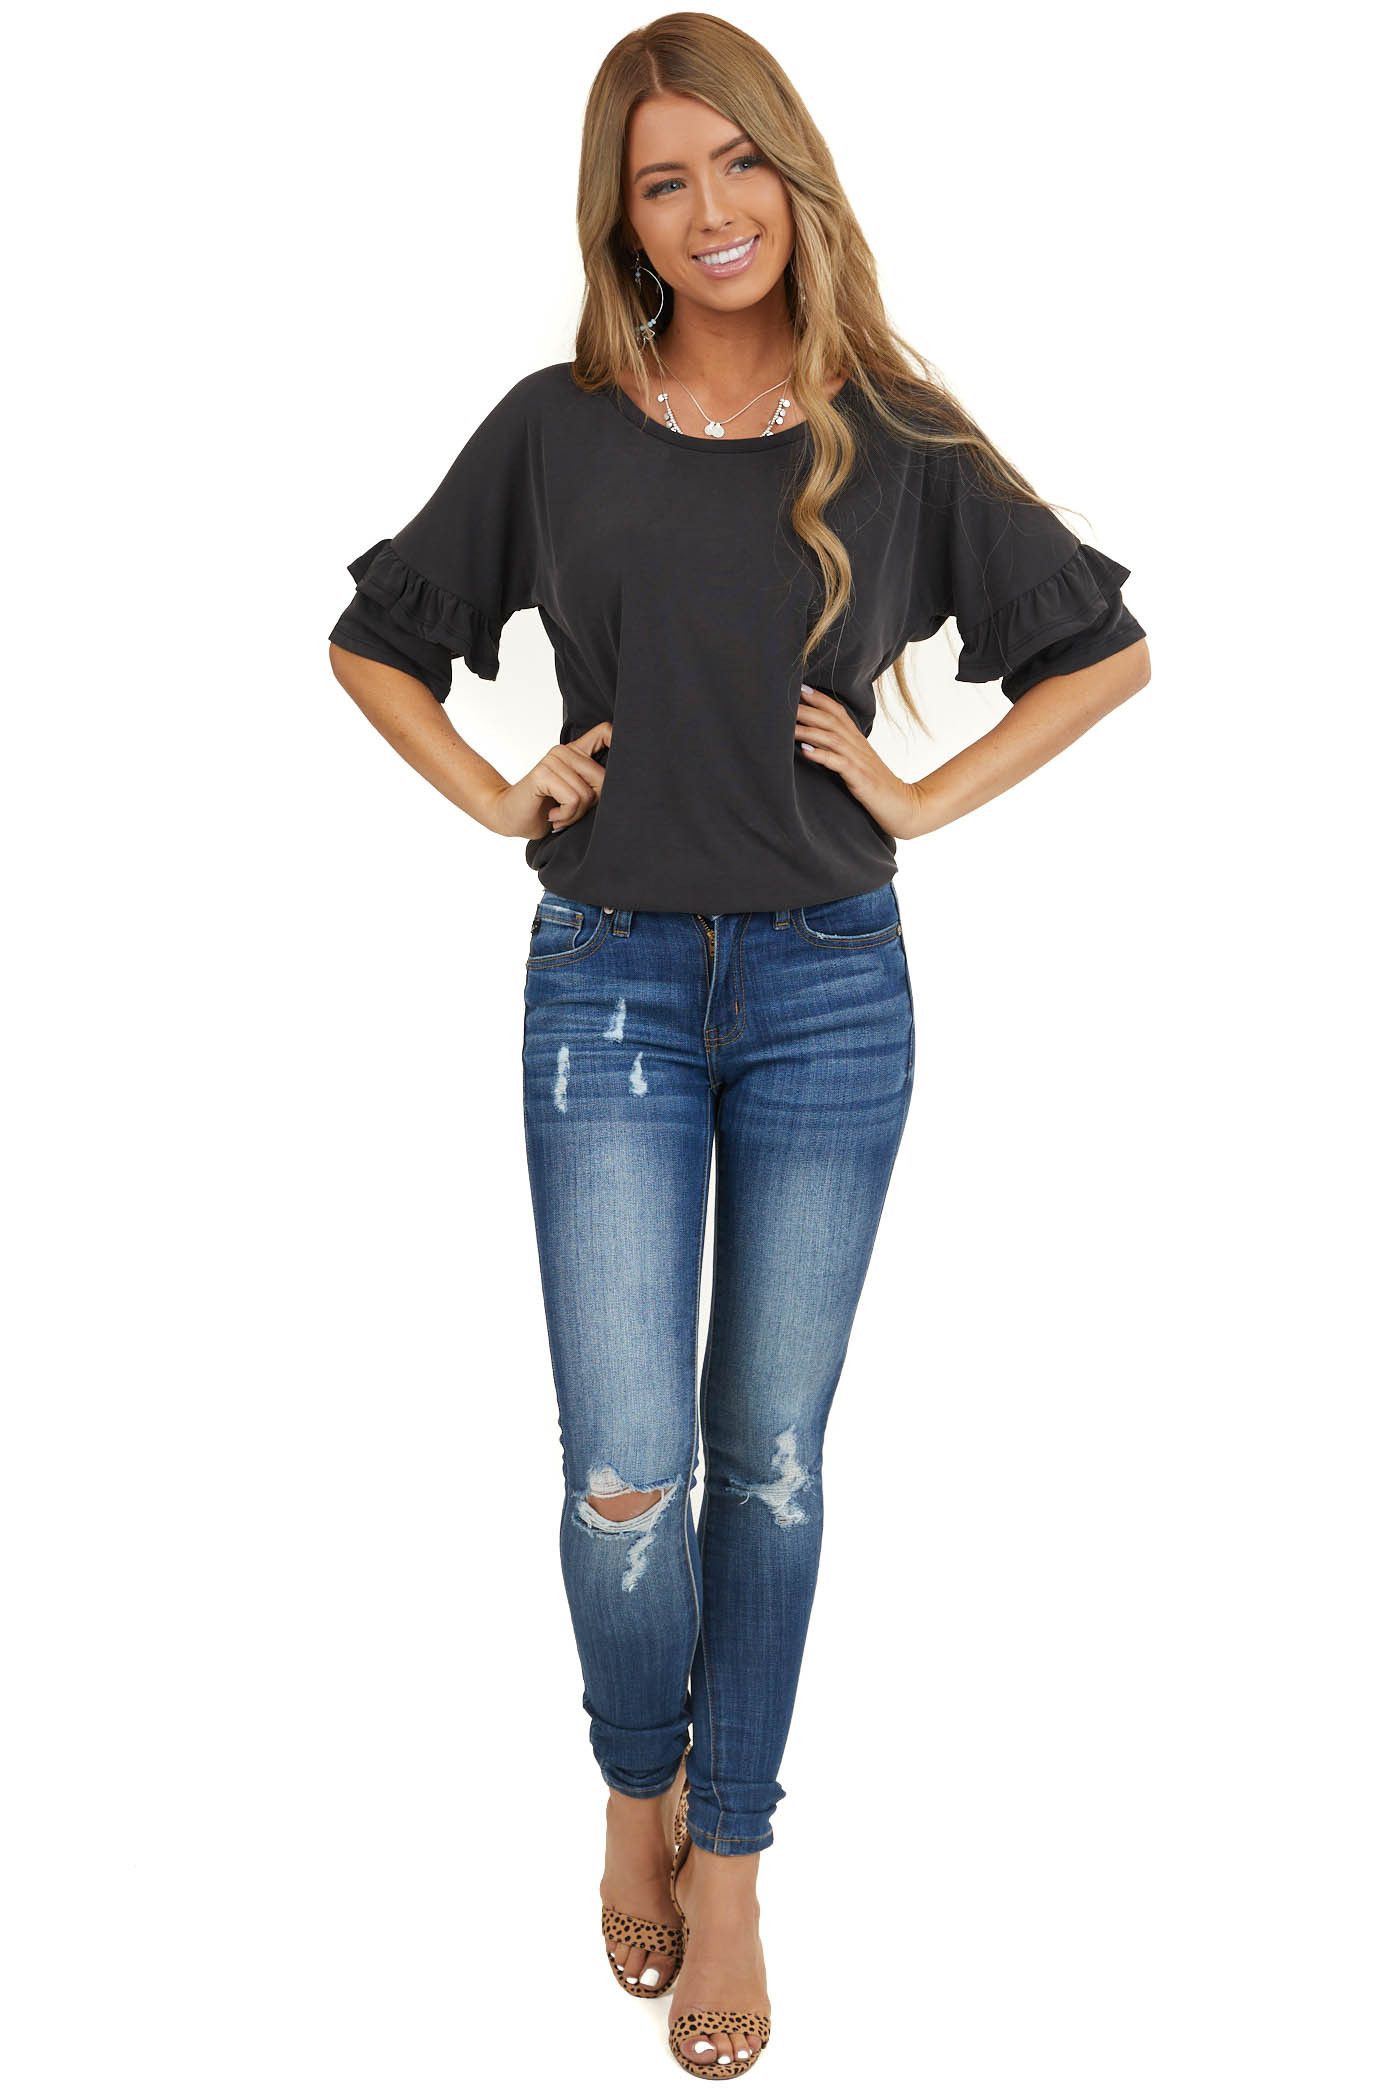 Slate Black Casual Top with Short Tiered Ruffle Sleeves